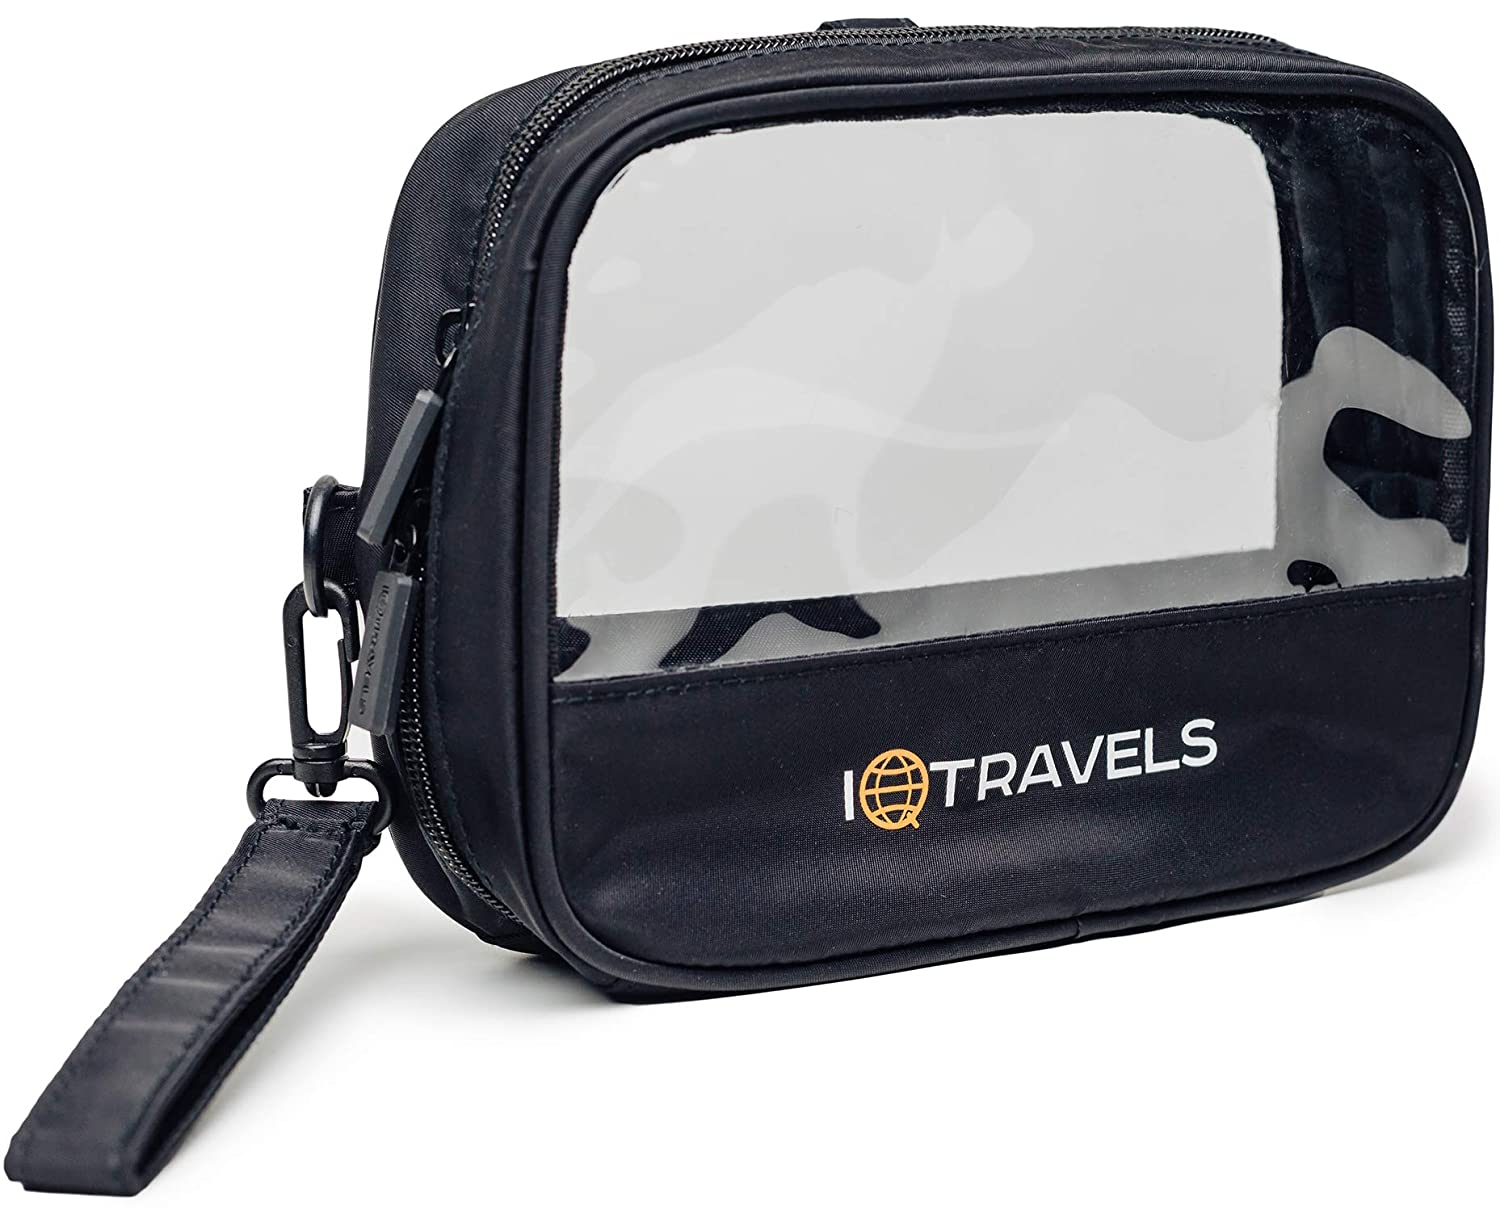 Tsa Approved Toiletry Bag – Clear Toiletry Bag – Quart Size Carry On Men s Clear Bag – 311 Plastic Liquid Zipper Bags – Clear Travel Toiletry Bag – Airport Makeup Cosmetic Liquids Sized Bag